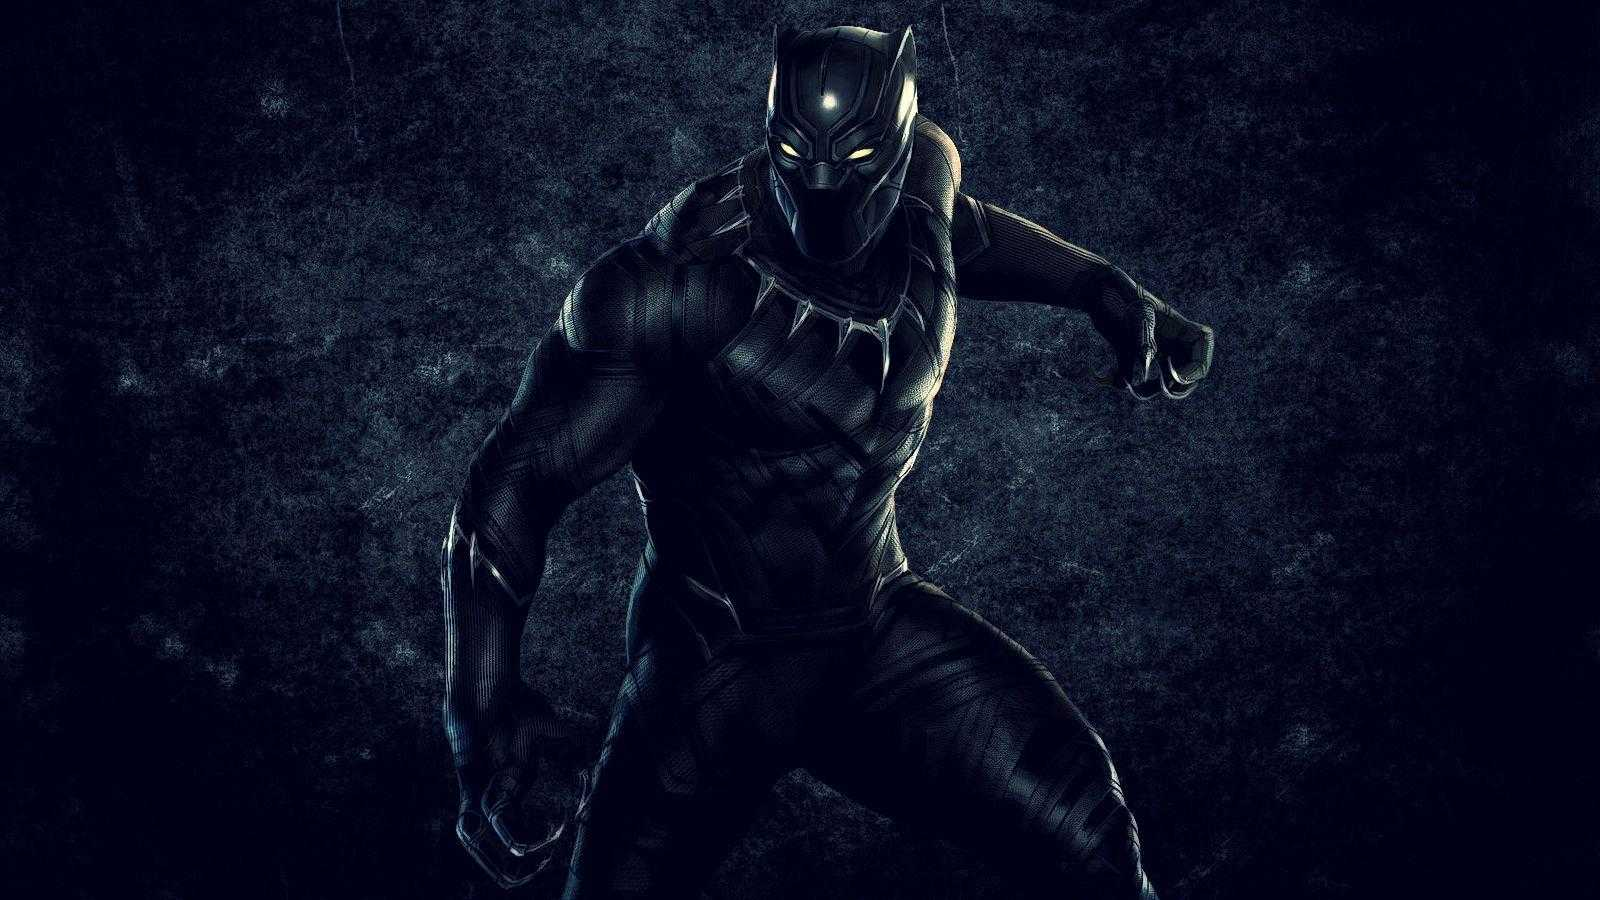 Black Panther Marvel Wallpapers Top Free Black Panther Marvel